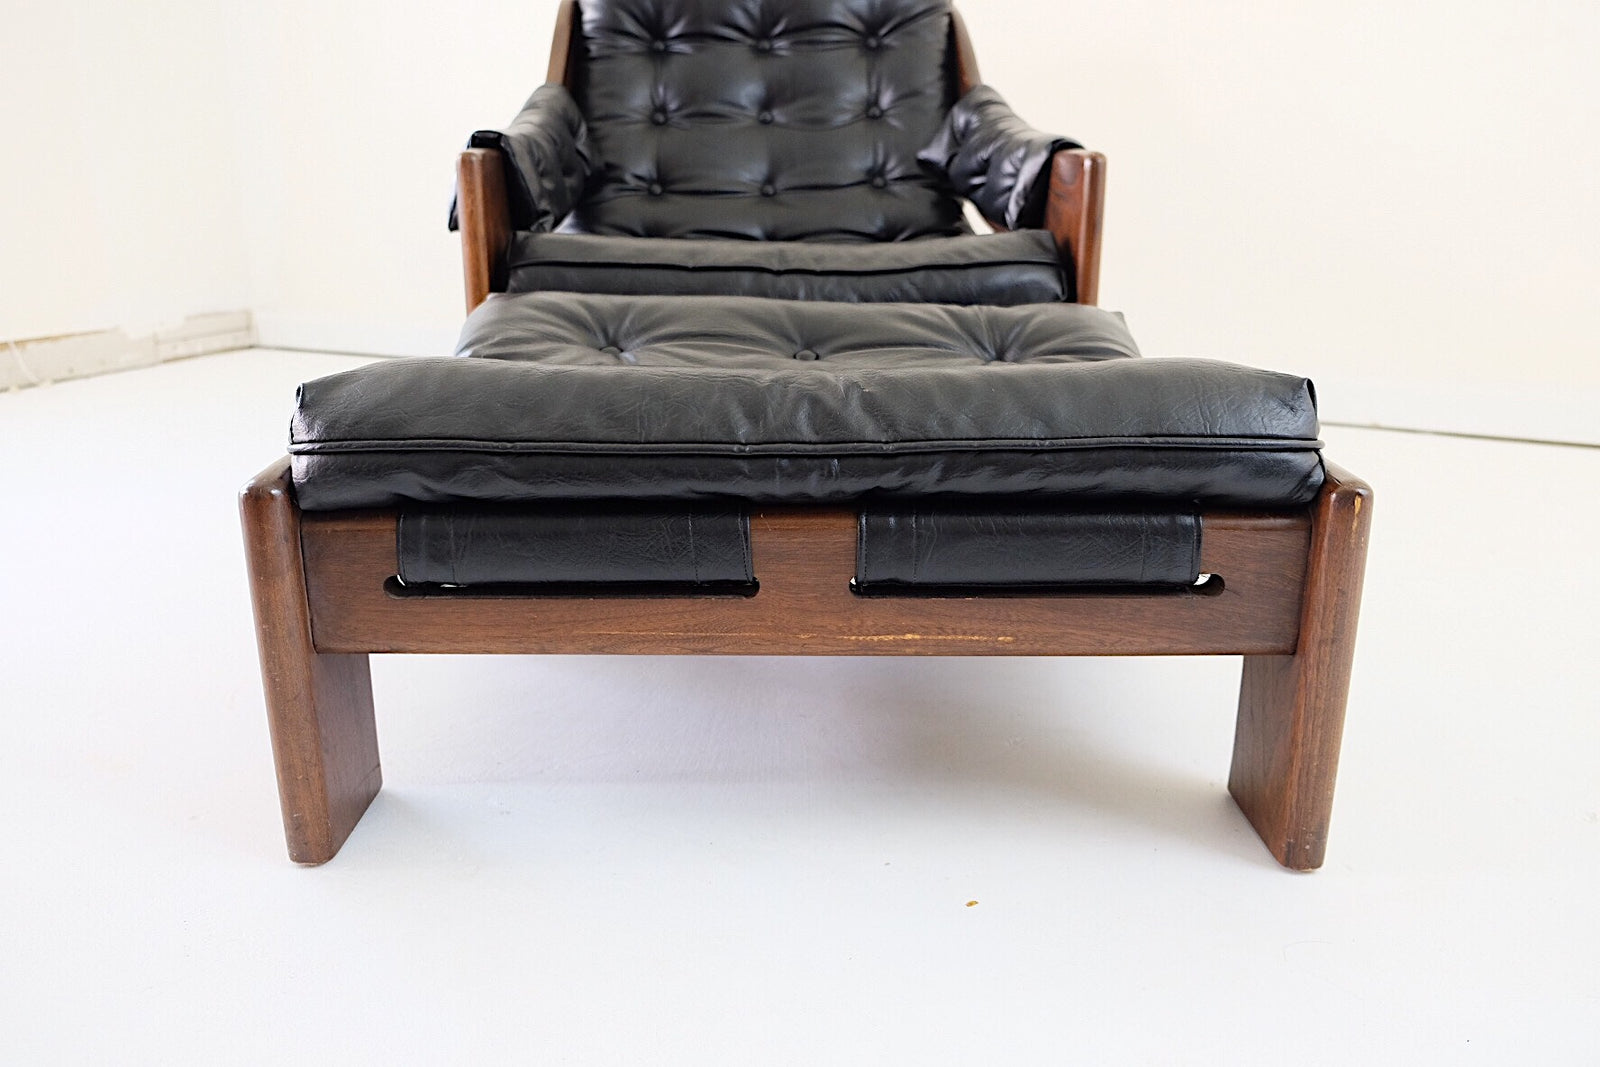 Scadinavian Leather Lounge Chair with Matching Ottoman Black Slingback Tufted